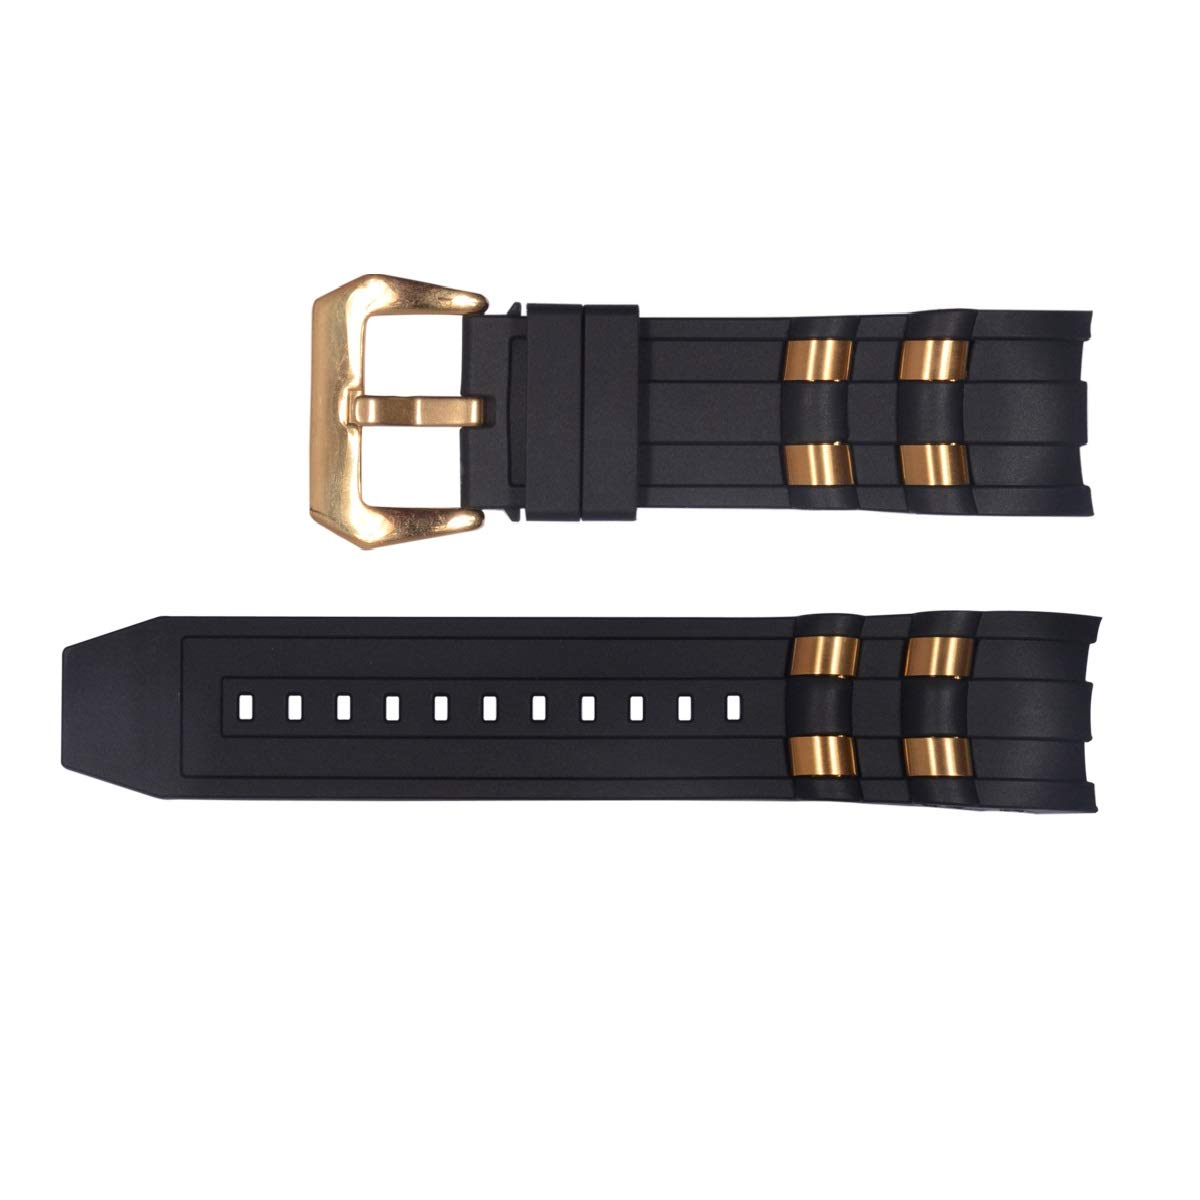 Vicdason for Invicta Pro Diver Watch Bands Replacement Strap with Bukcle Metal Inserts - Black Rubber Silicone Invicta Watch Strap by Vicdason (Image #1)